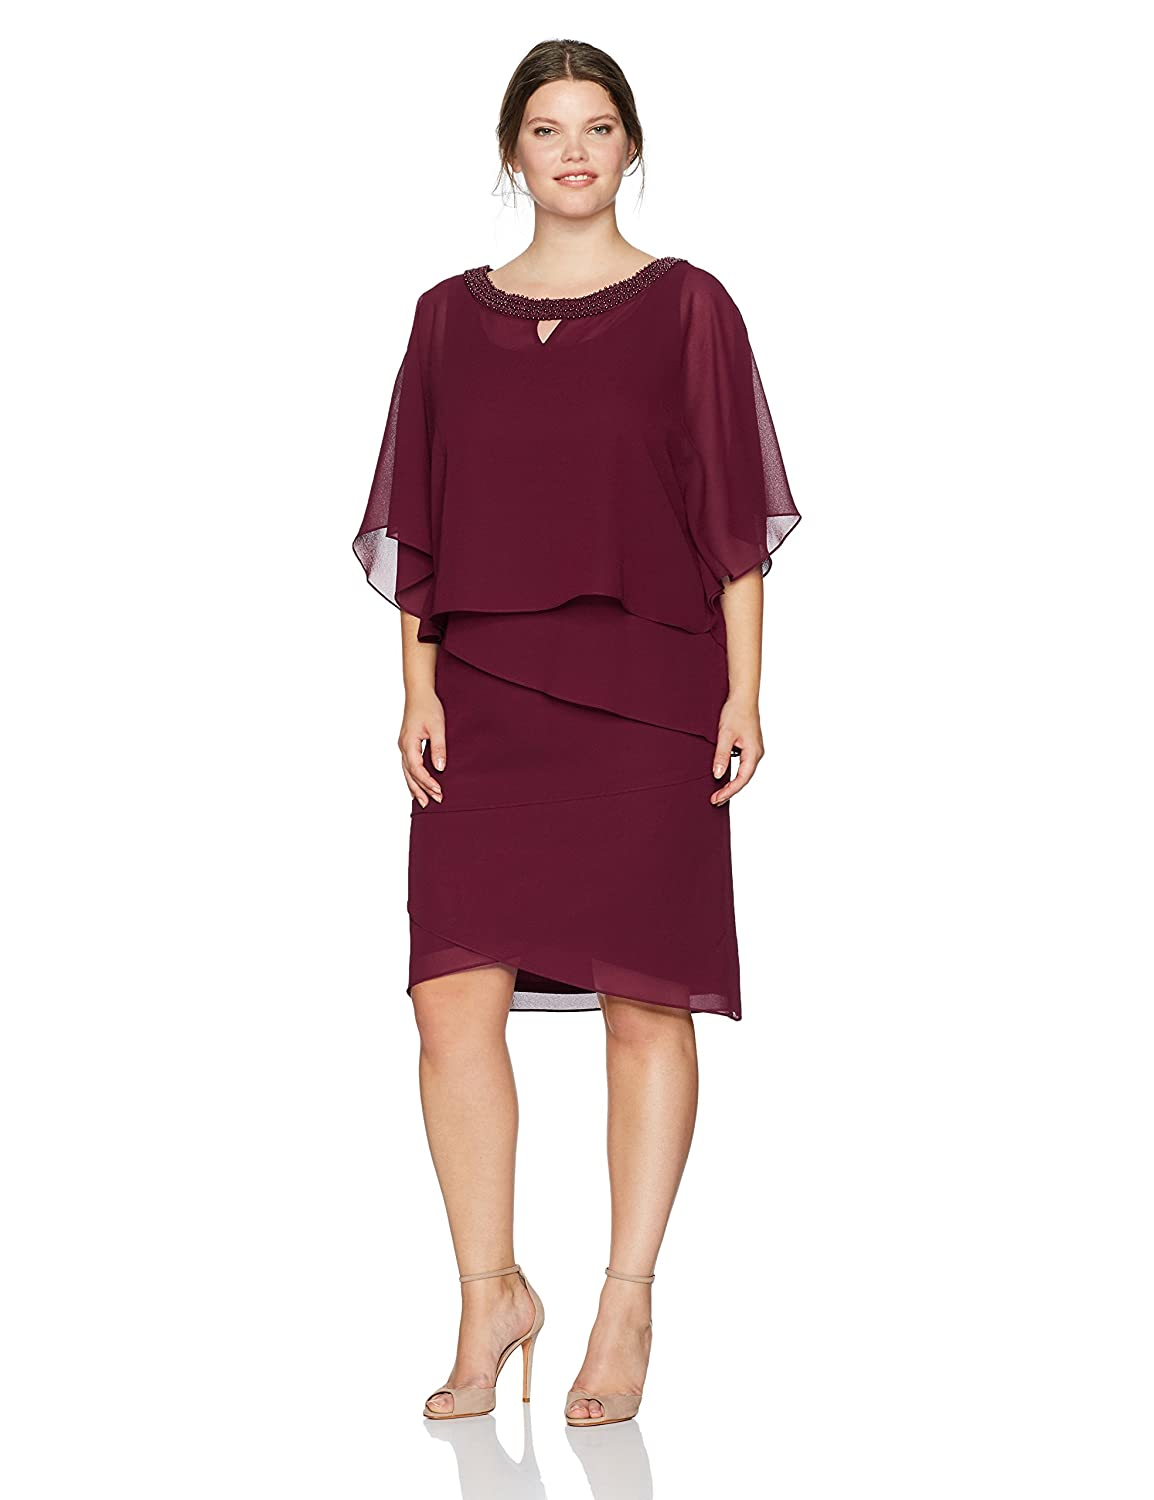 Passion Fruit Le Bos Womens Beaded Neck Poncho Dress W Tiers Dress